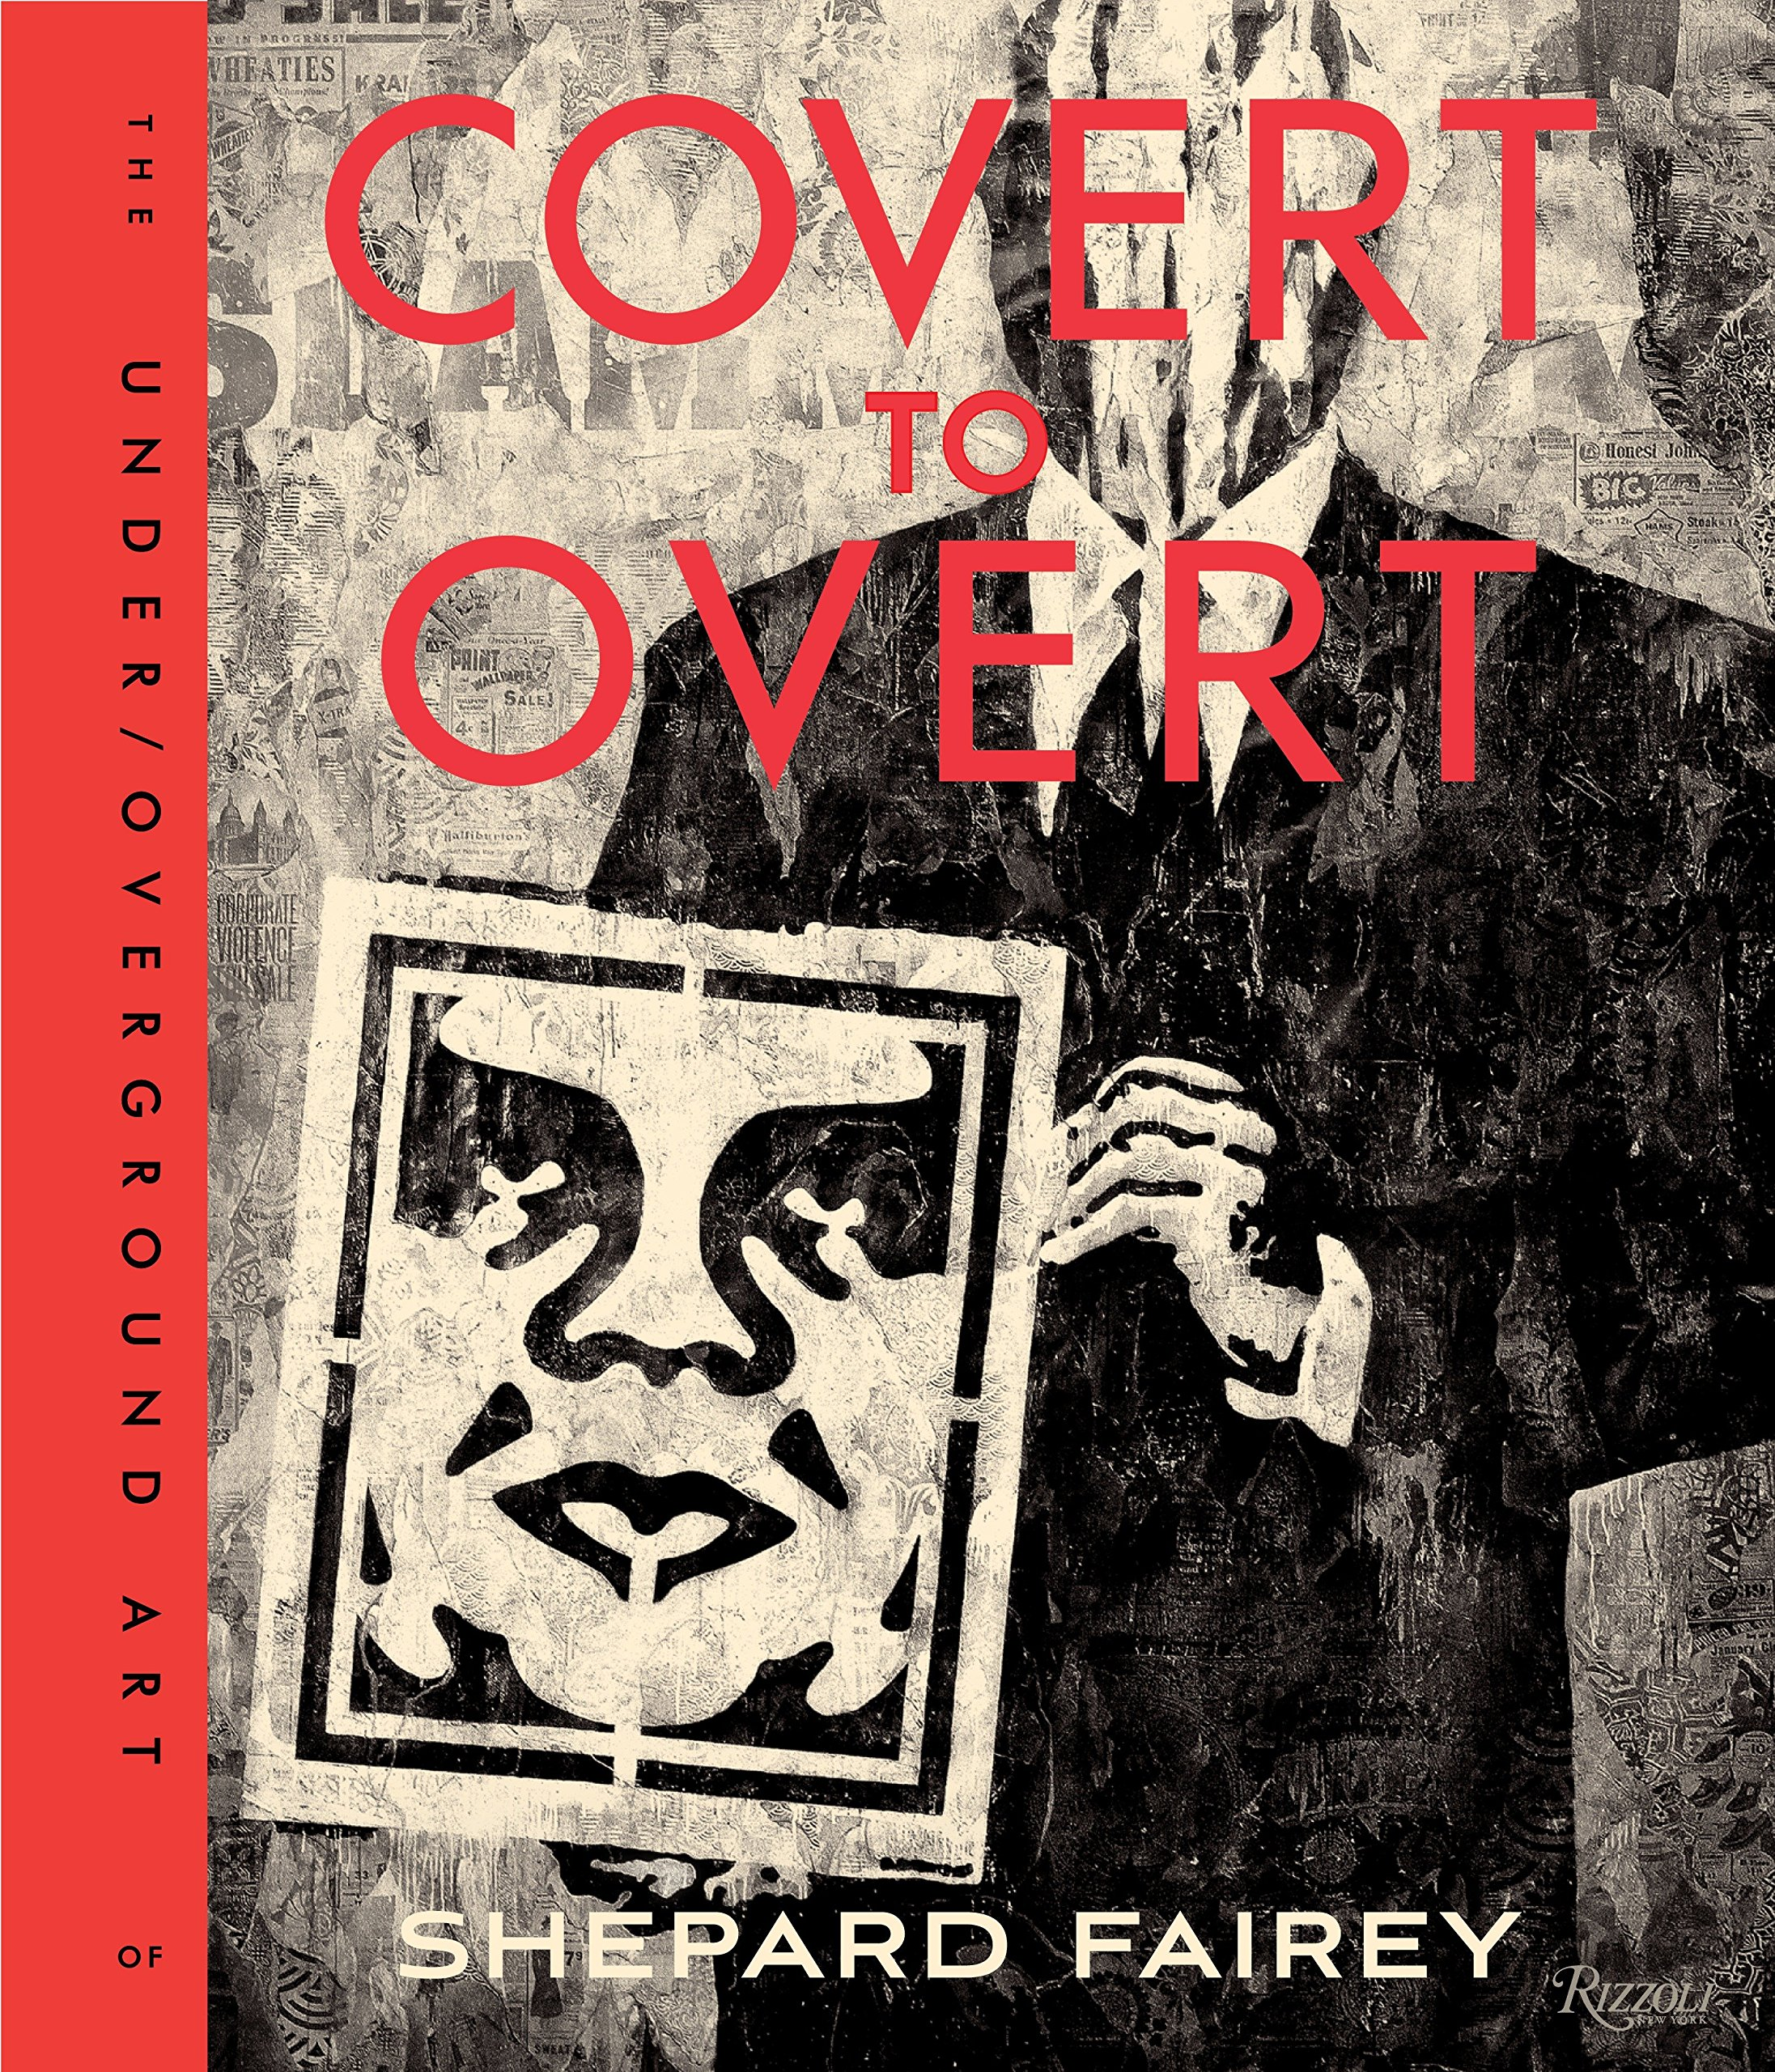 covert and overt abuse of power